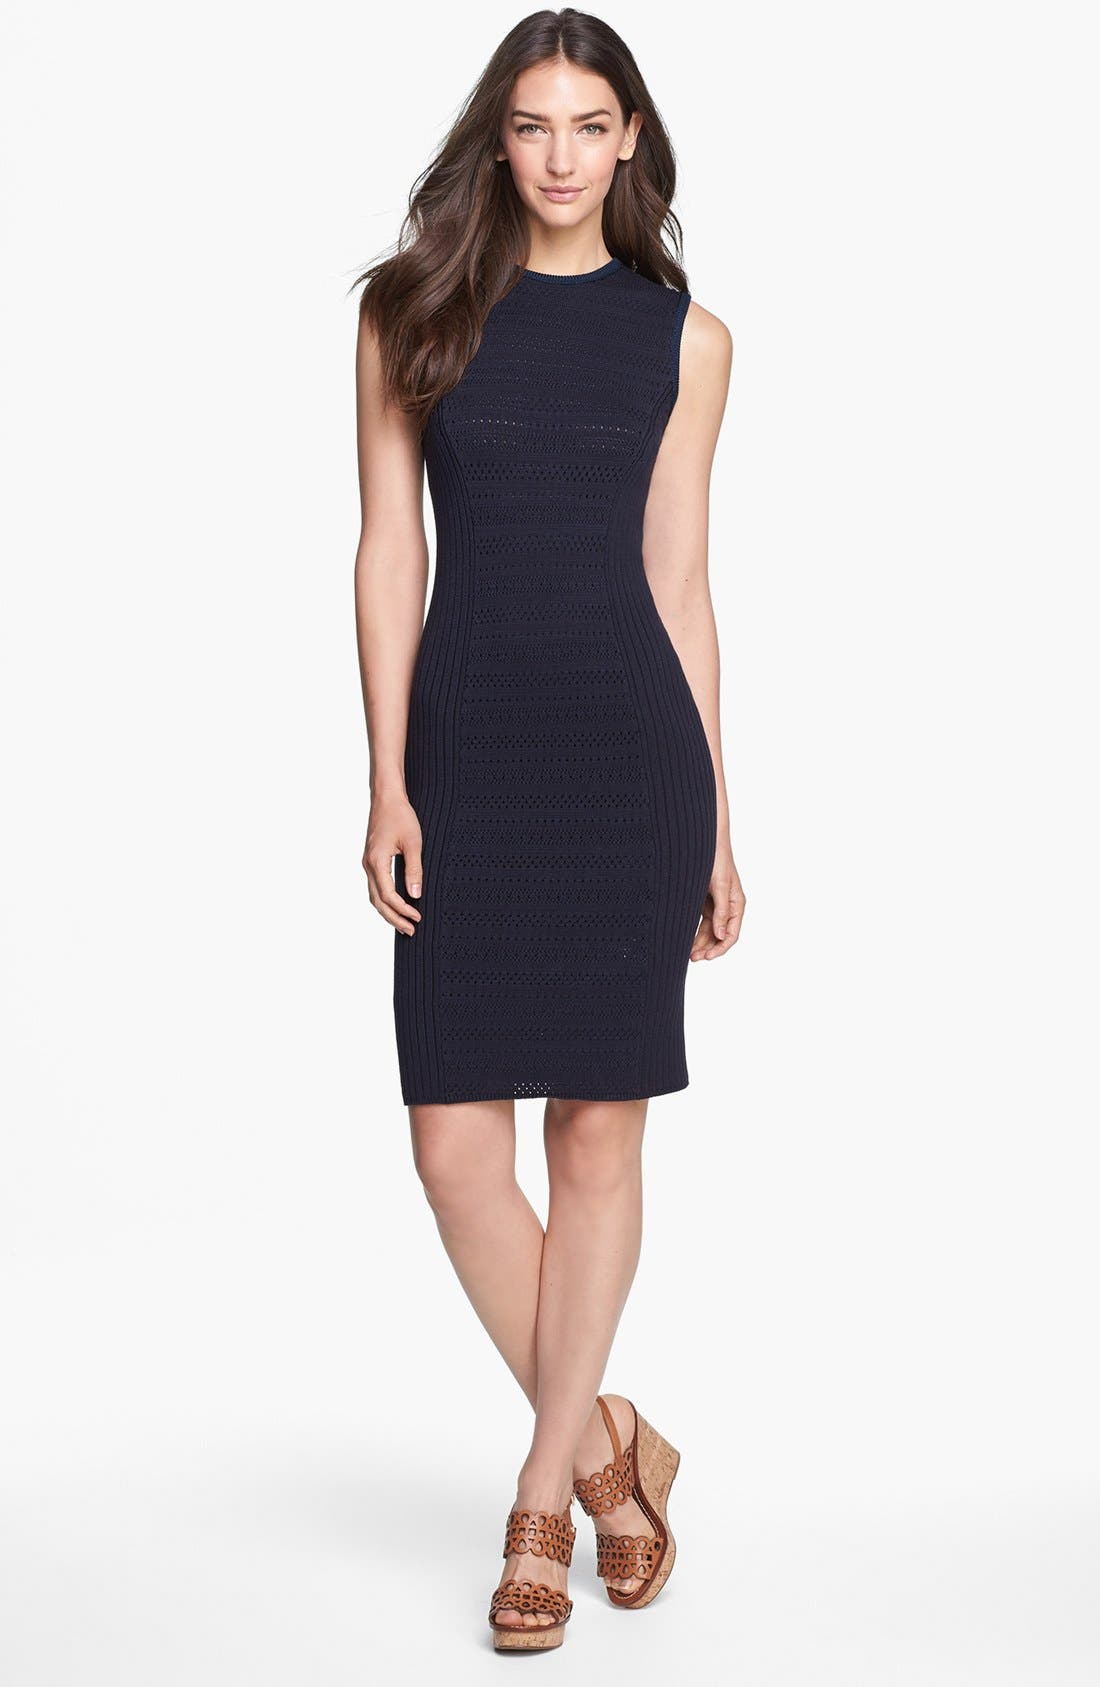 Alternate Image 1 Selected - Tory Burch 'Penelope' Pointelle Knit Sleeveless Dress